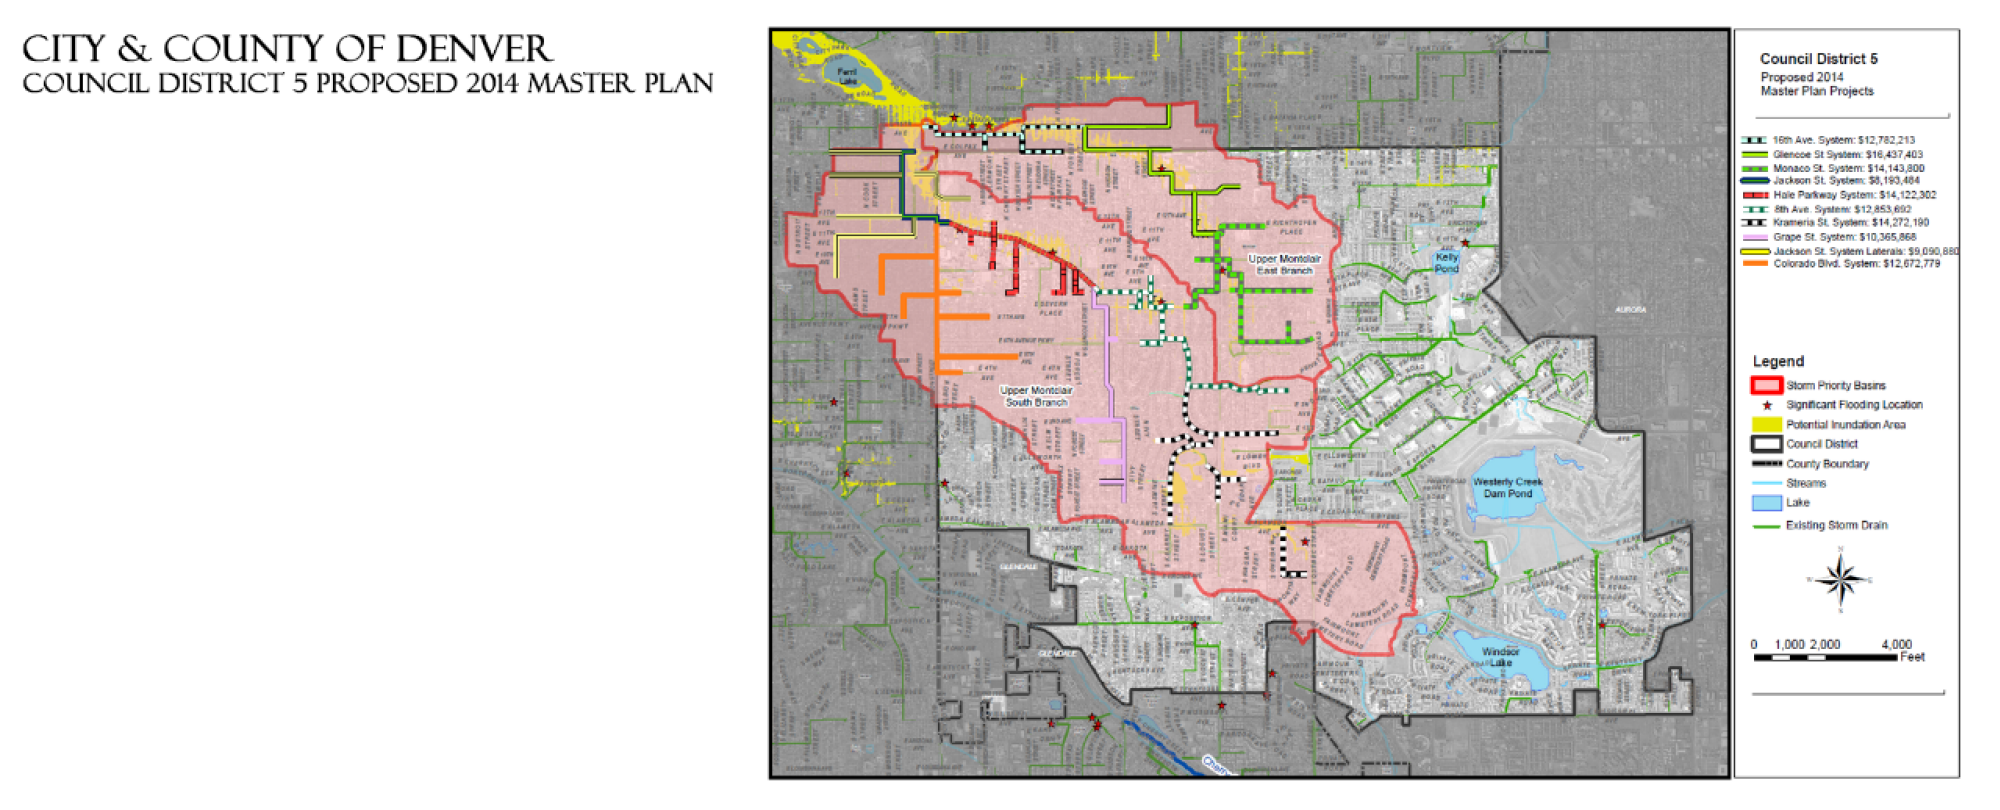 map of council district 5 proposed master plan area